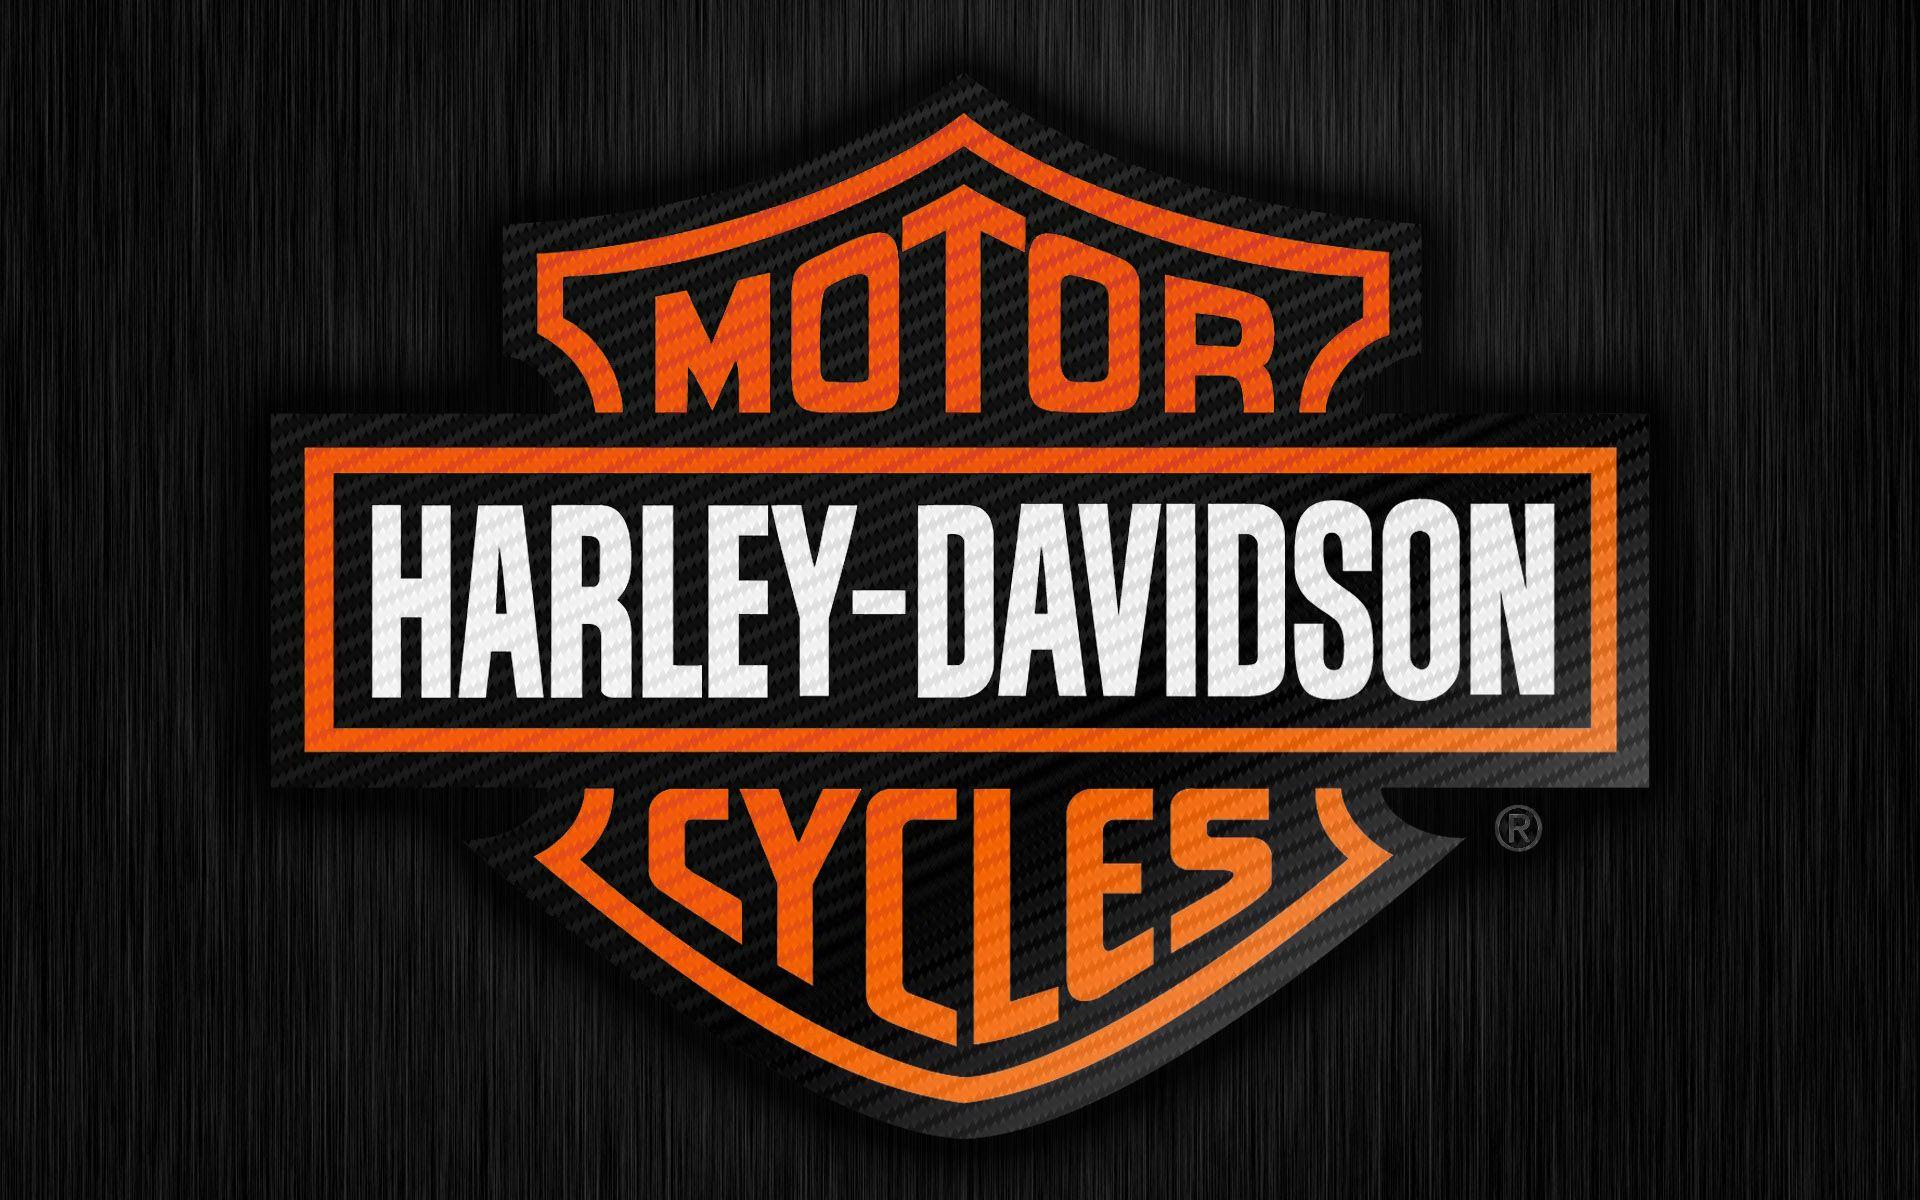 newest harley davidson logo wallpapers -#main